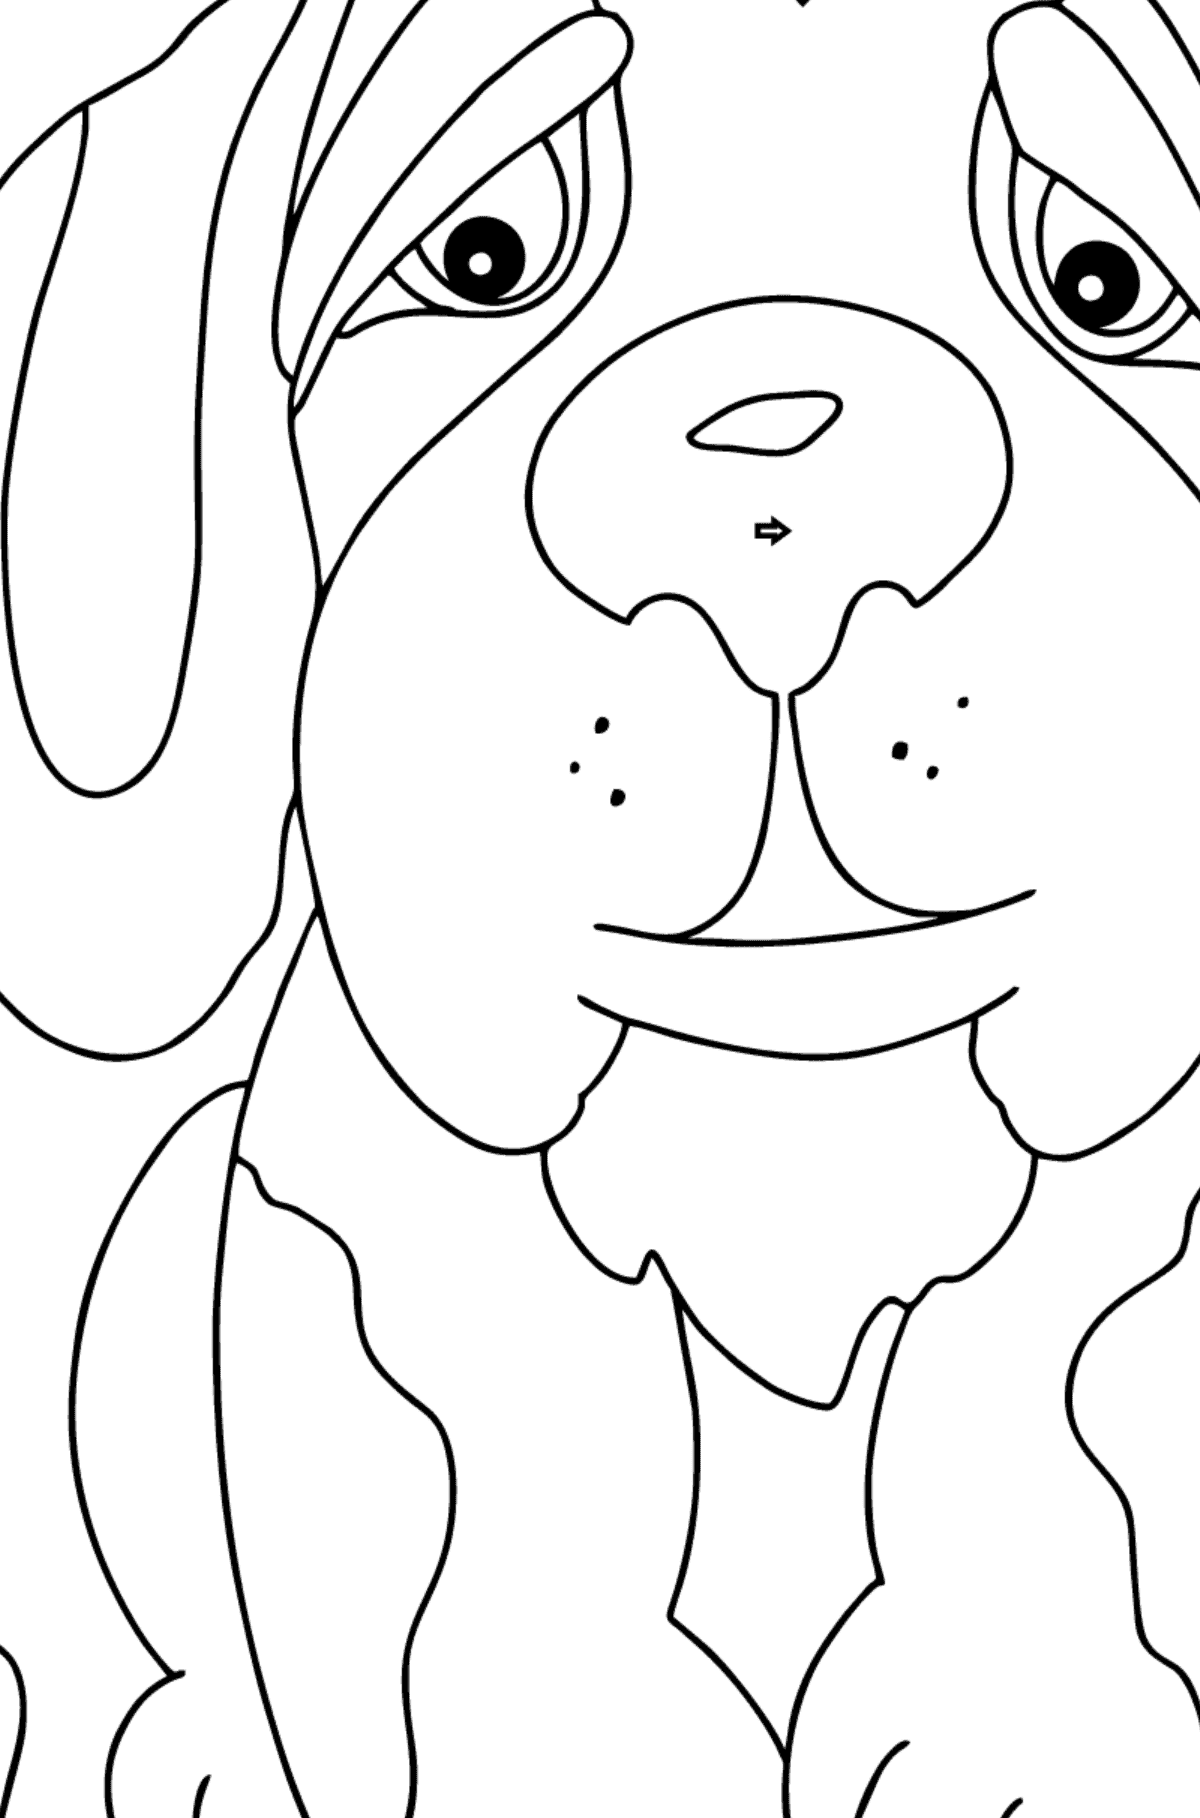 Coloring Page - A Dog is Looking Out a Butterfly for Kids  - Color by Geometric Shapes